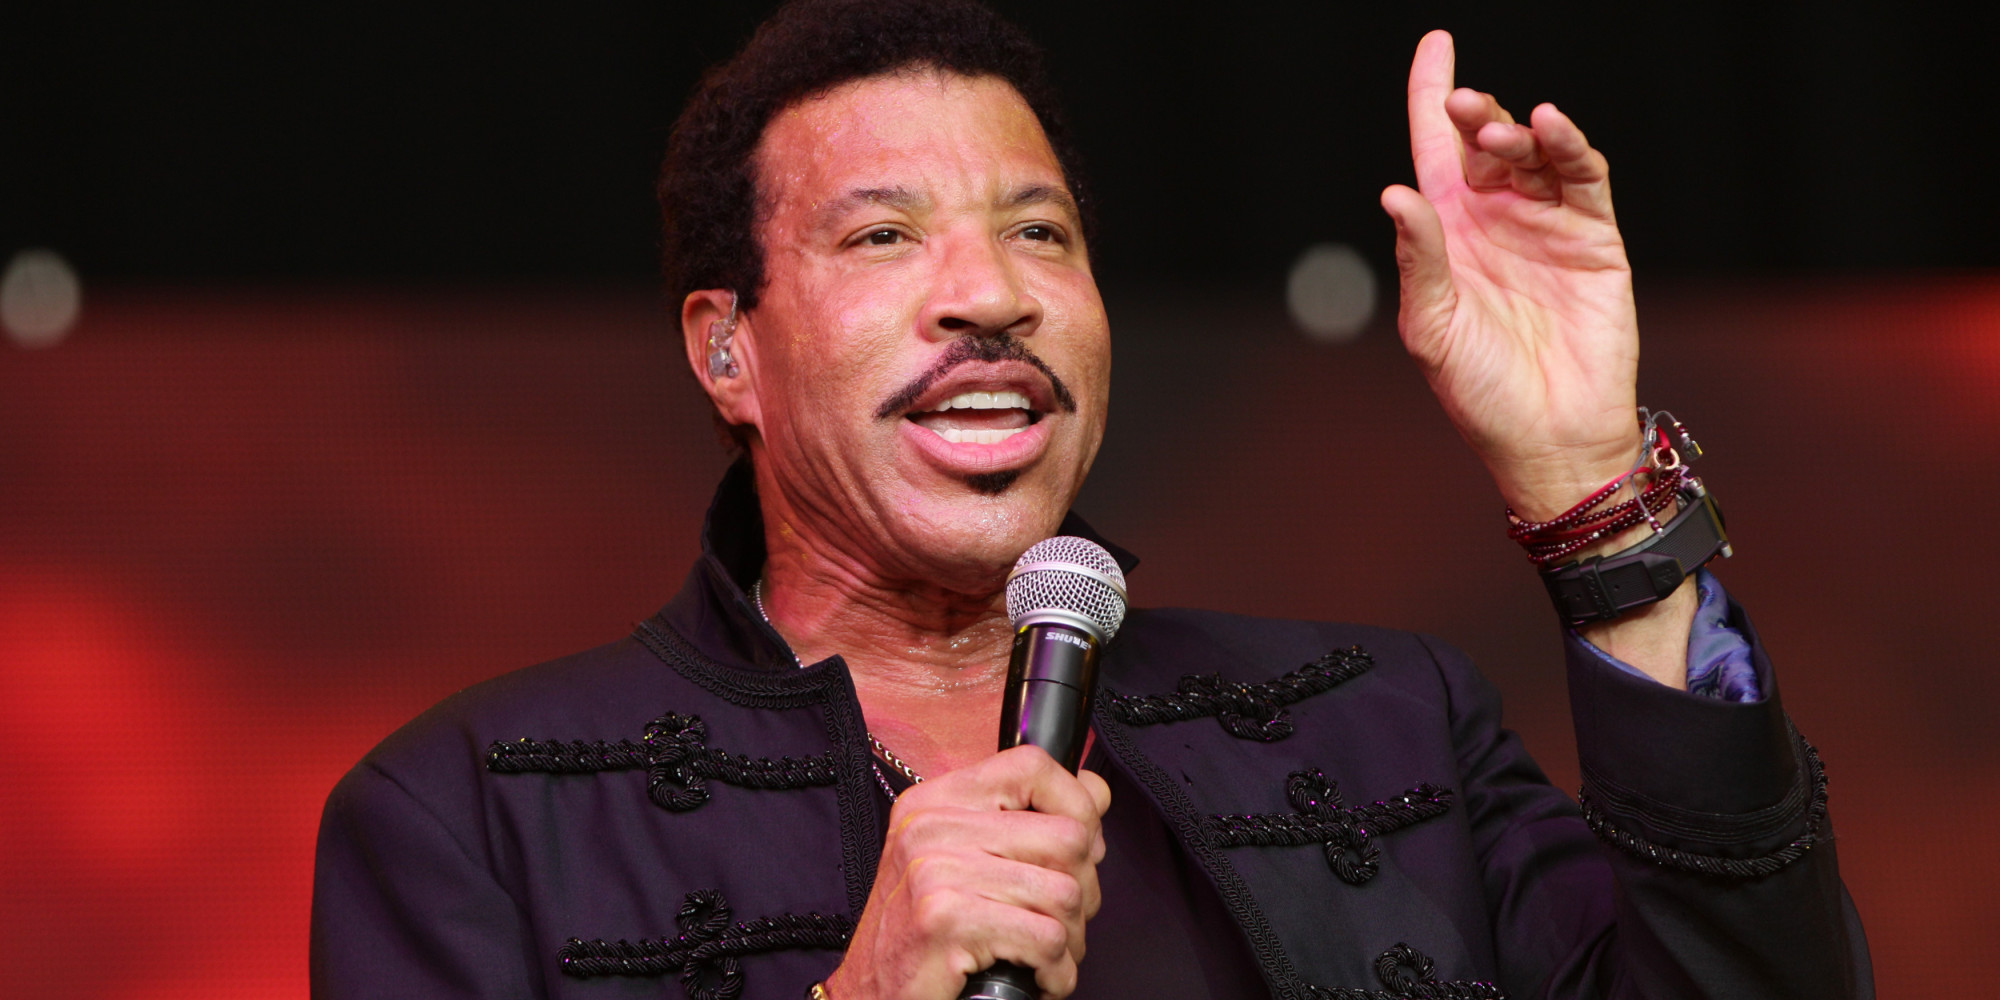 Henley Festival Lionel Richie Tops UK Album Chart With